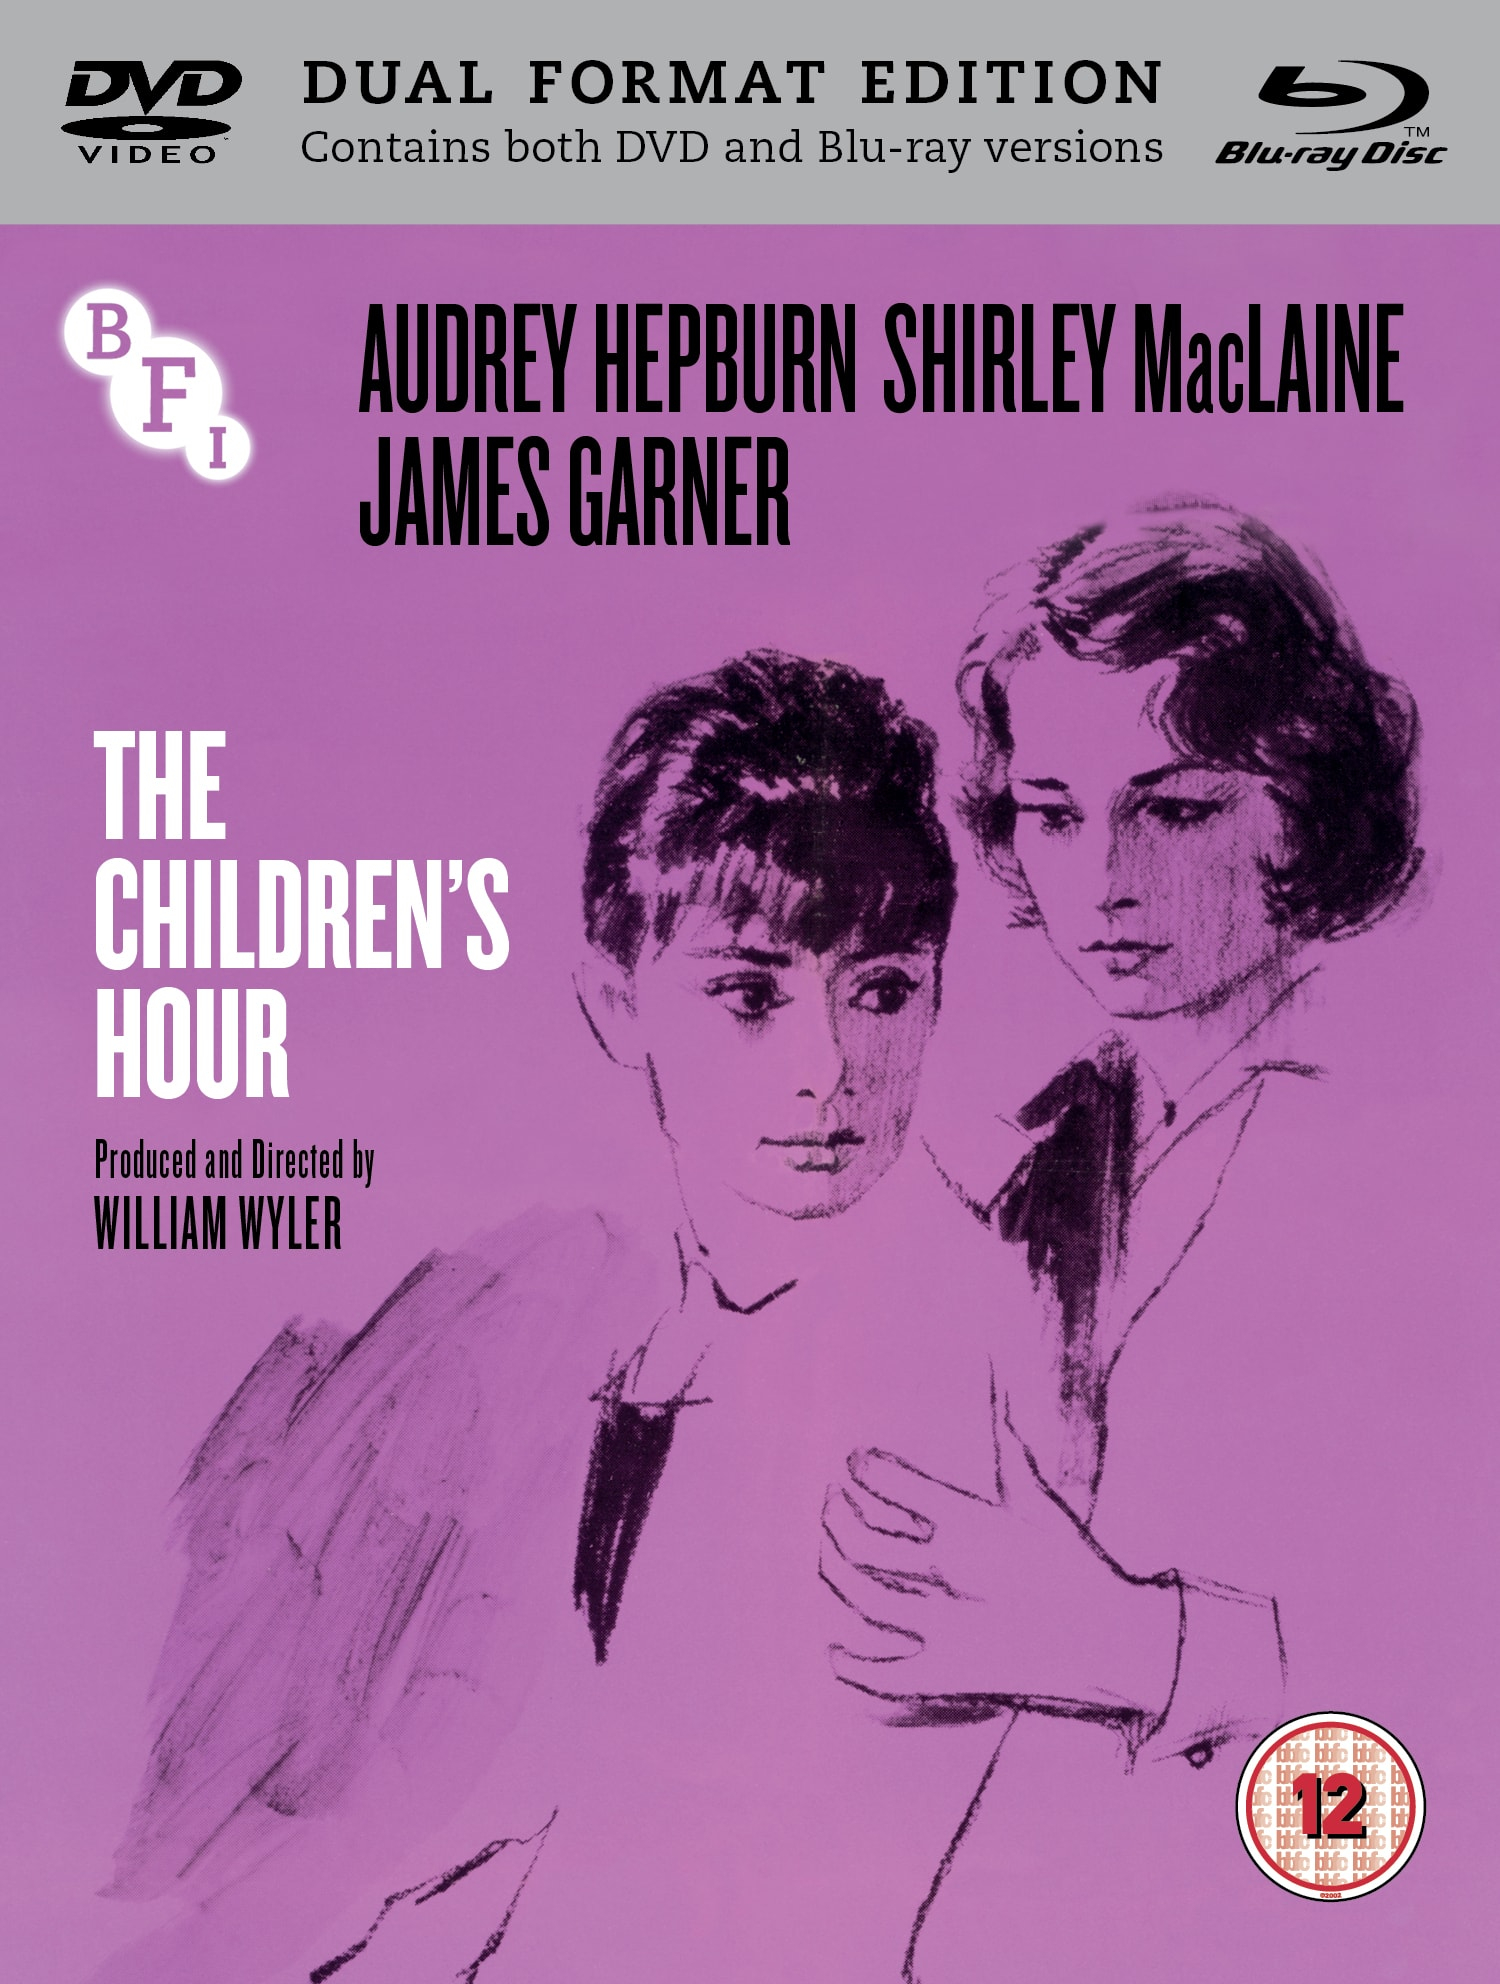 Buy PRE-ORDER The Children's Hour (Dual Format Edition)